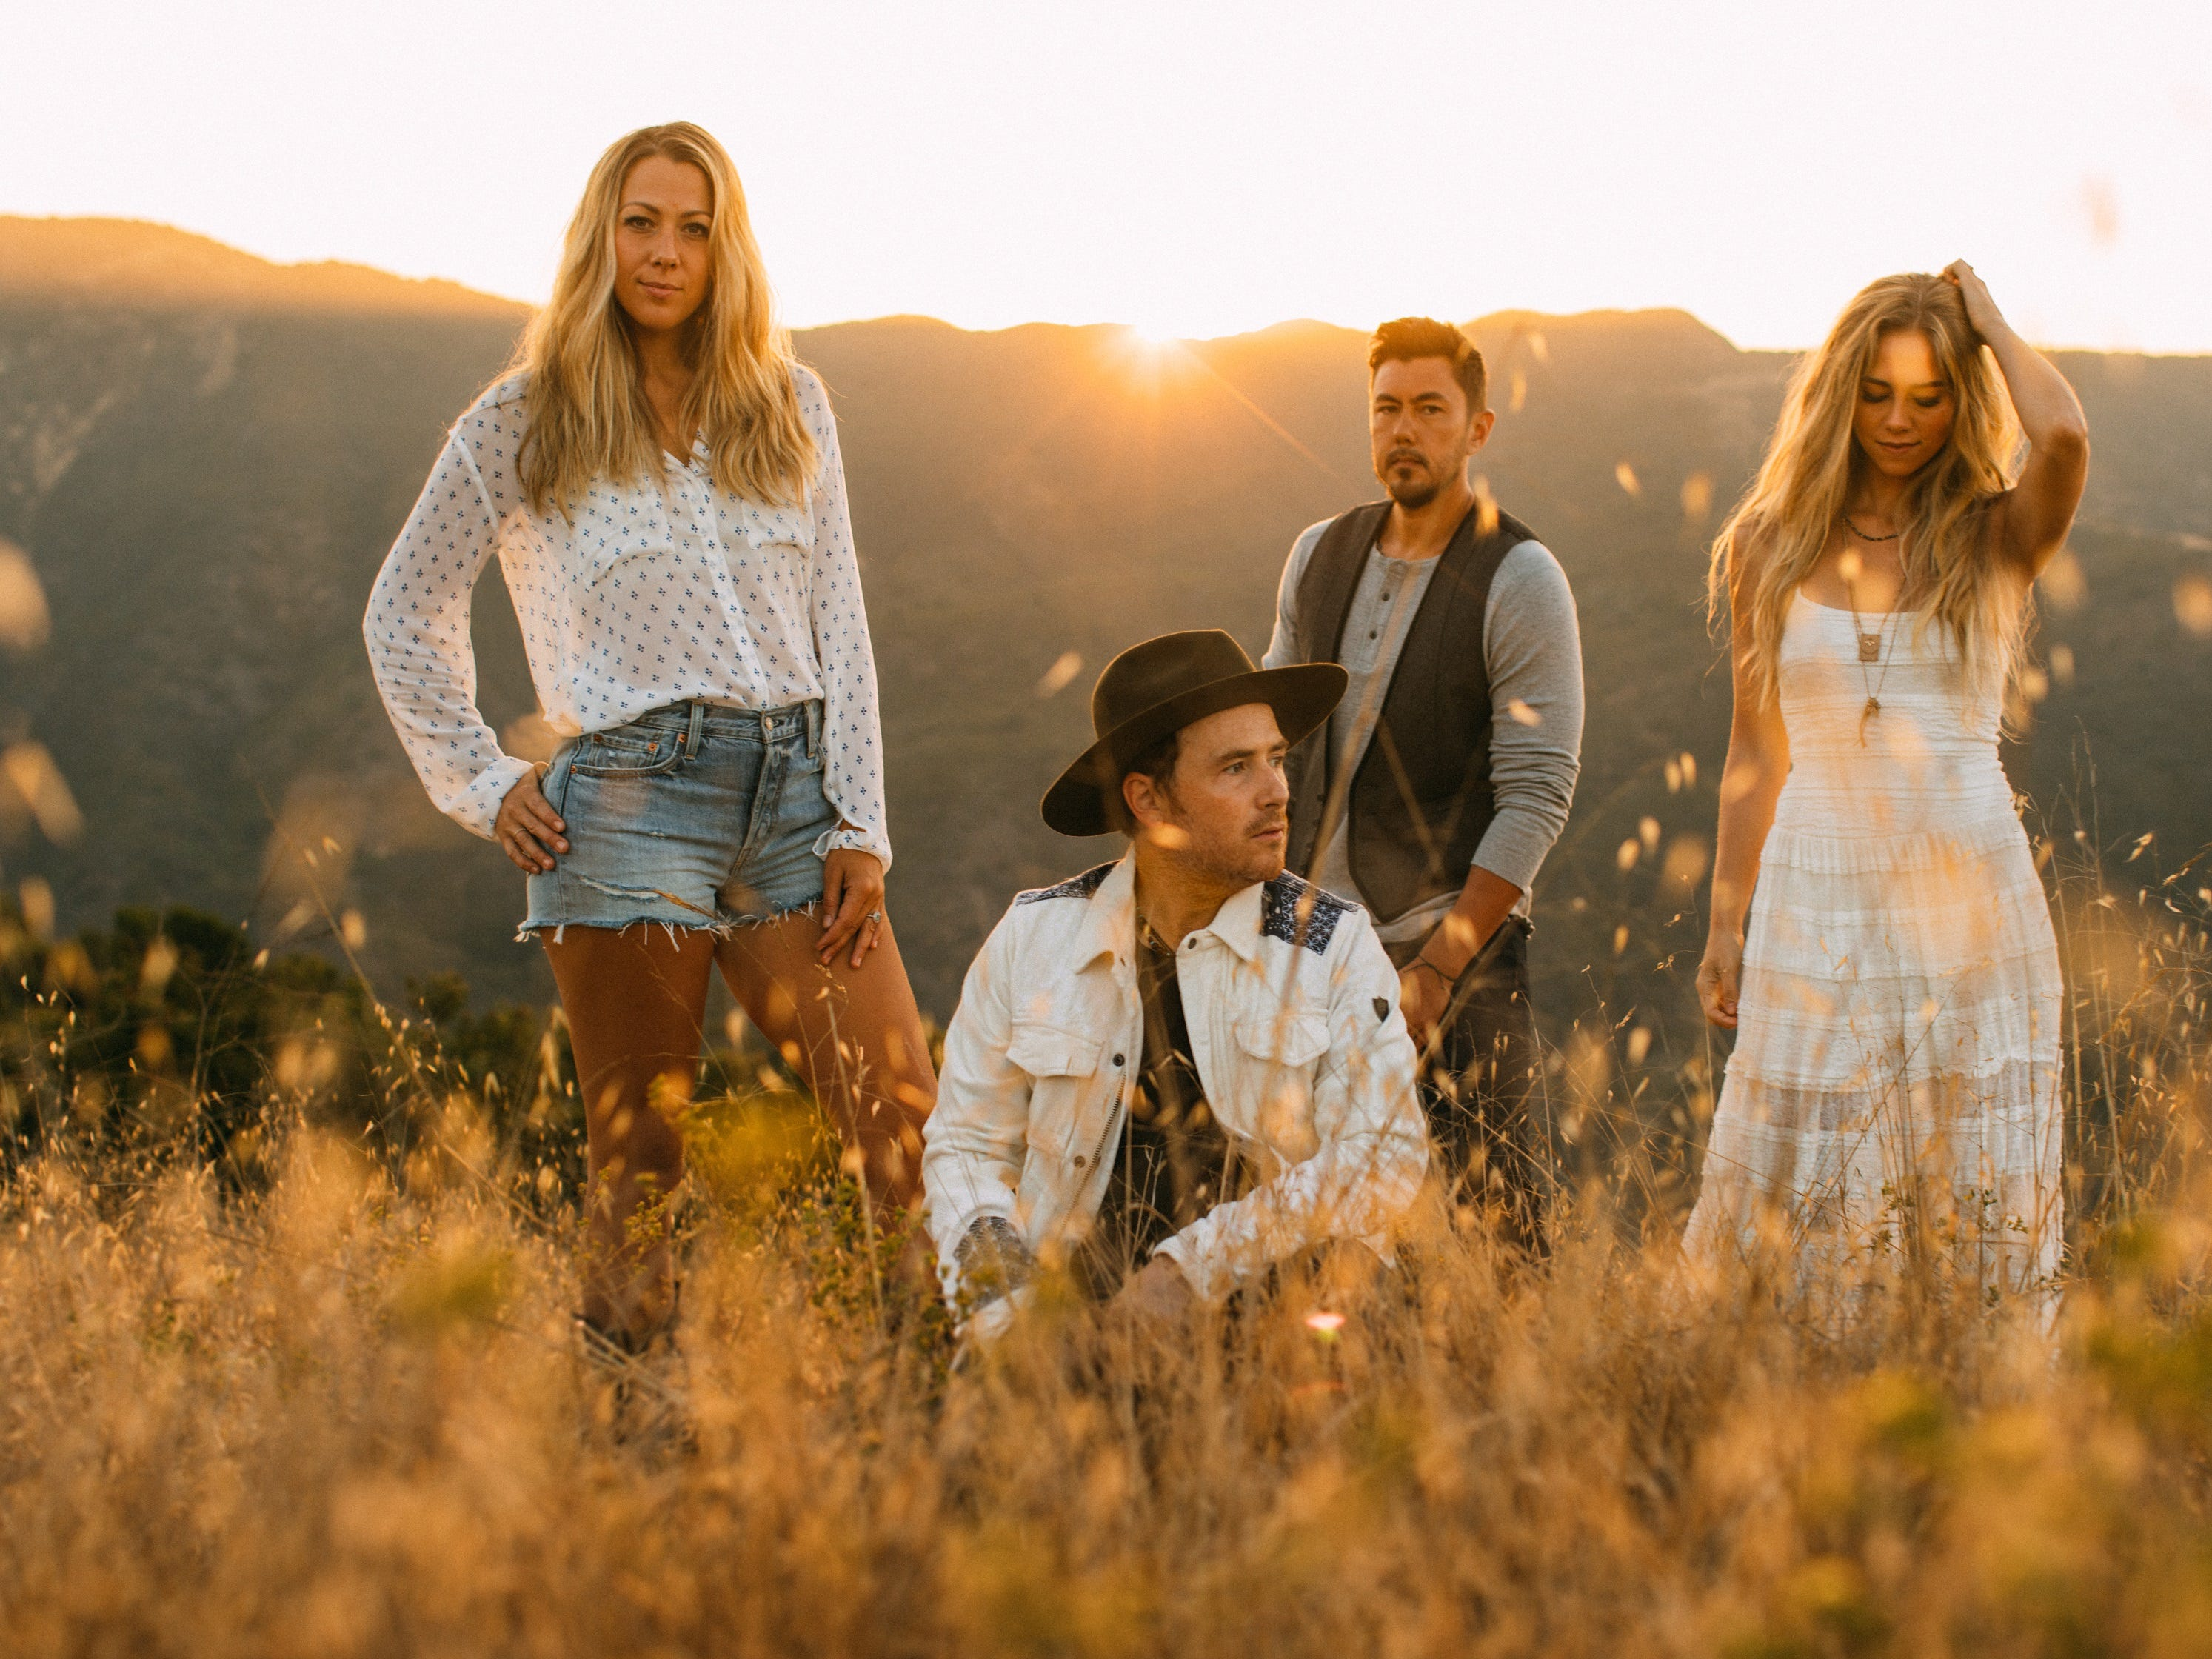 Musician Colbie Caillat, left, will perform at the Borderline Strong concert Feb. 11 in Thousand Oaks with her band Gone West, which also includes Jason Reeves, Justin Young and Nelly Joy.